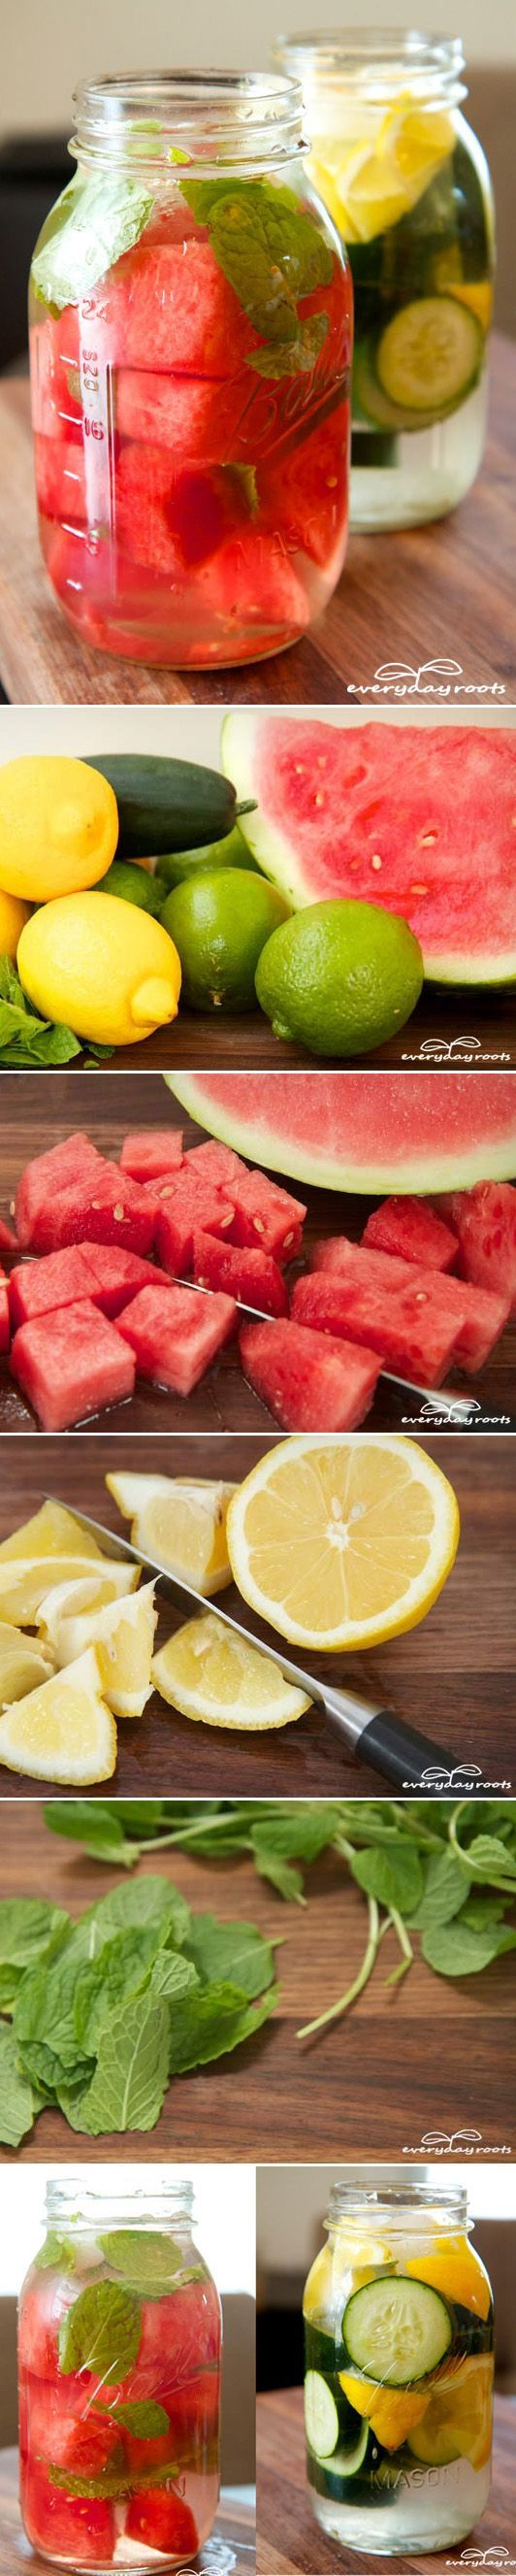 DIY Detox Drinks  Watermelon/cucumber, lemon/lime, mint leaves